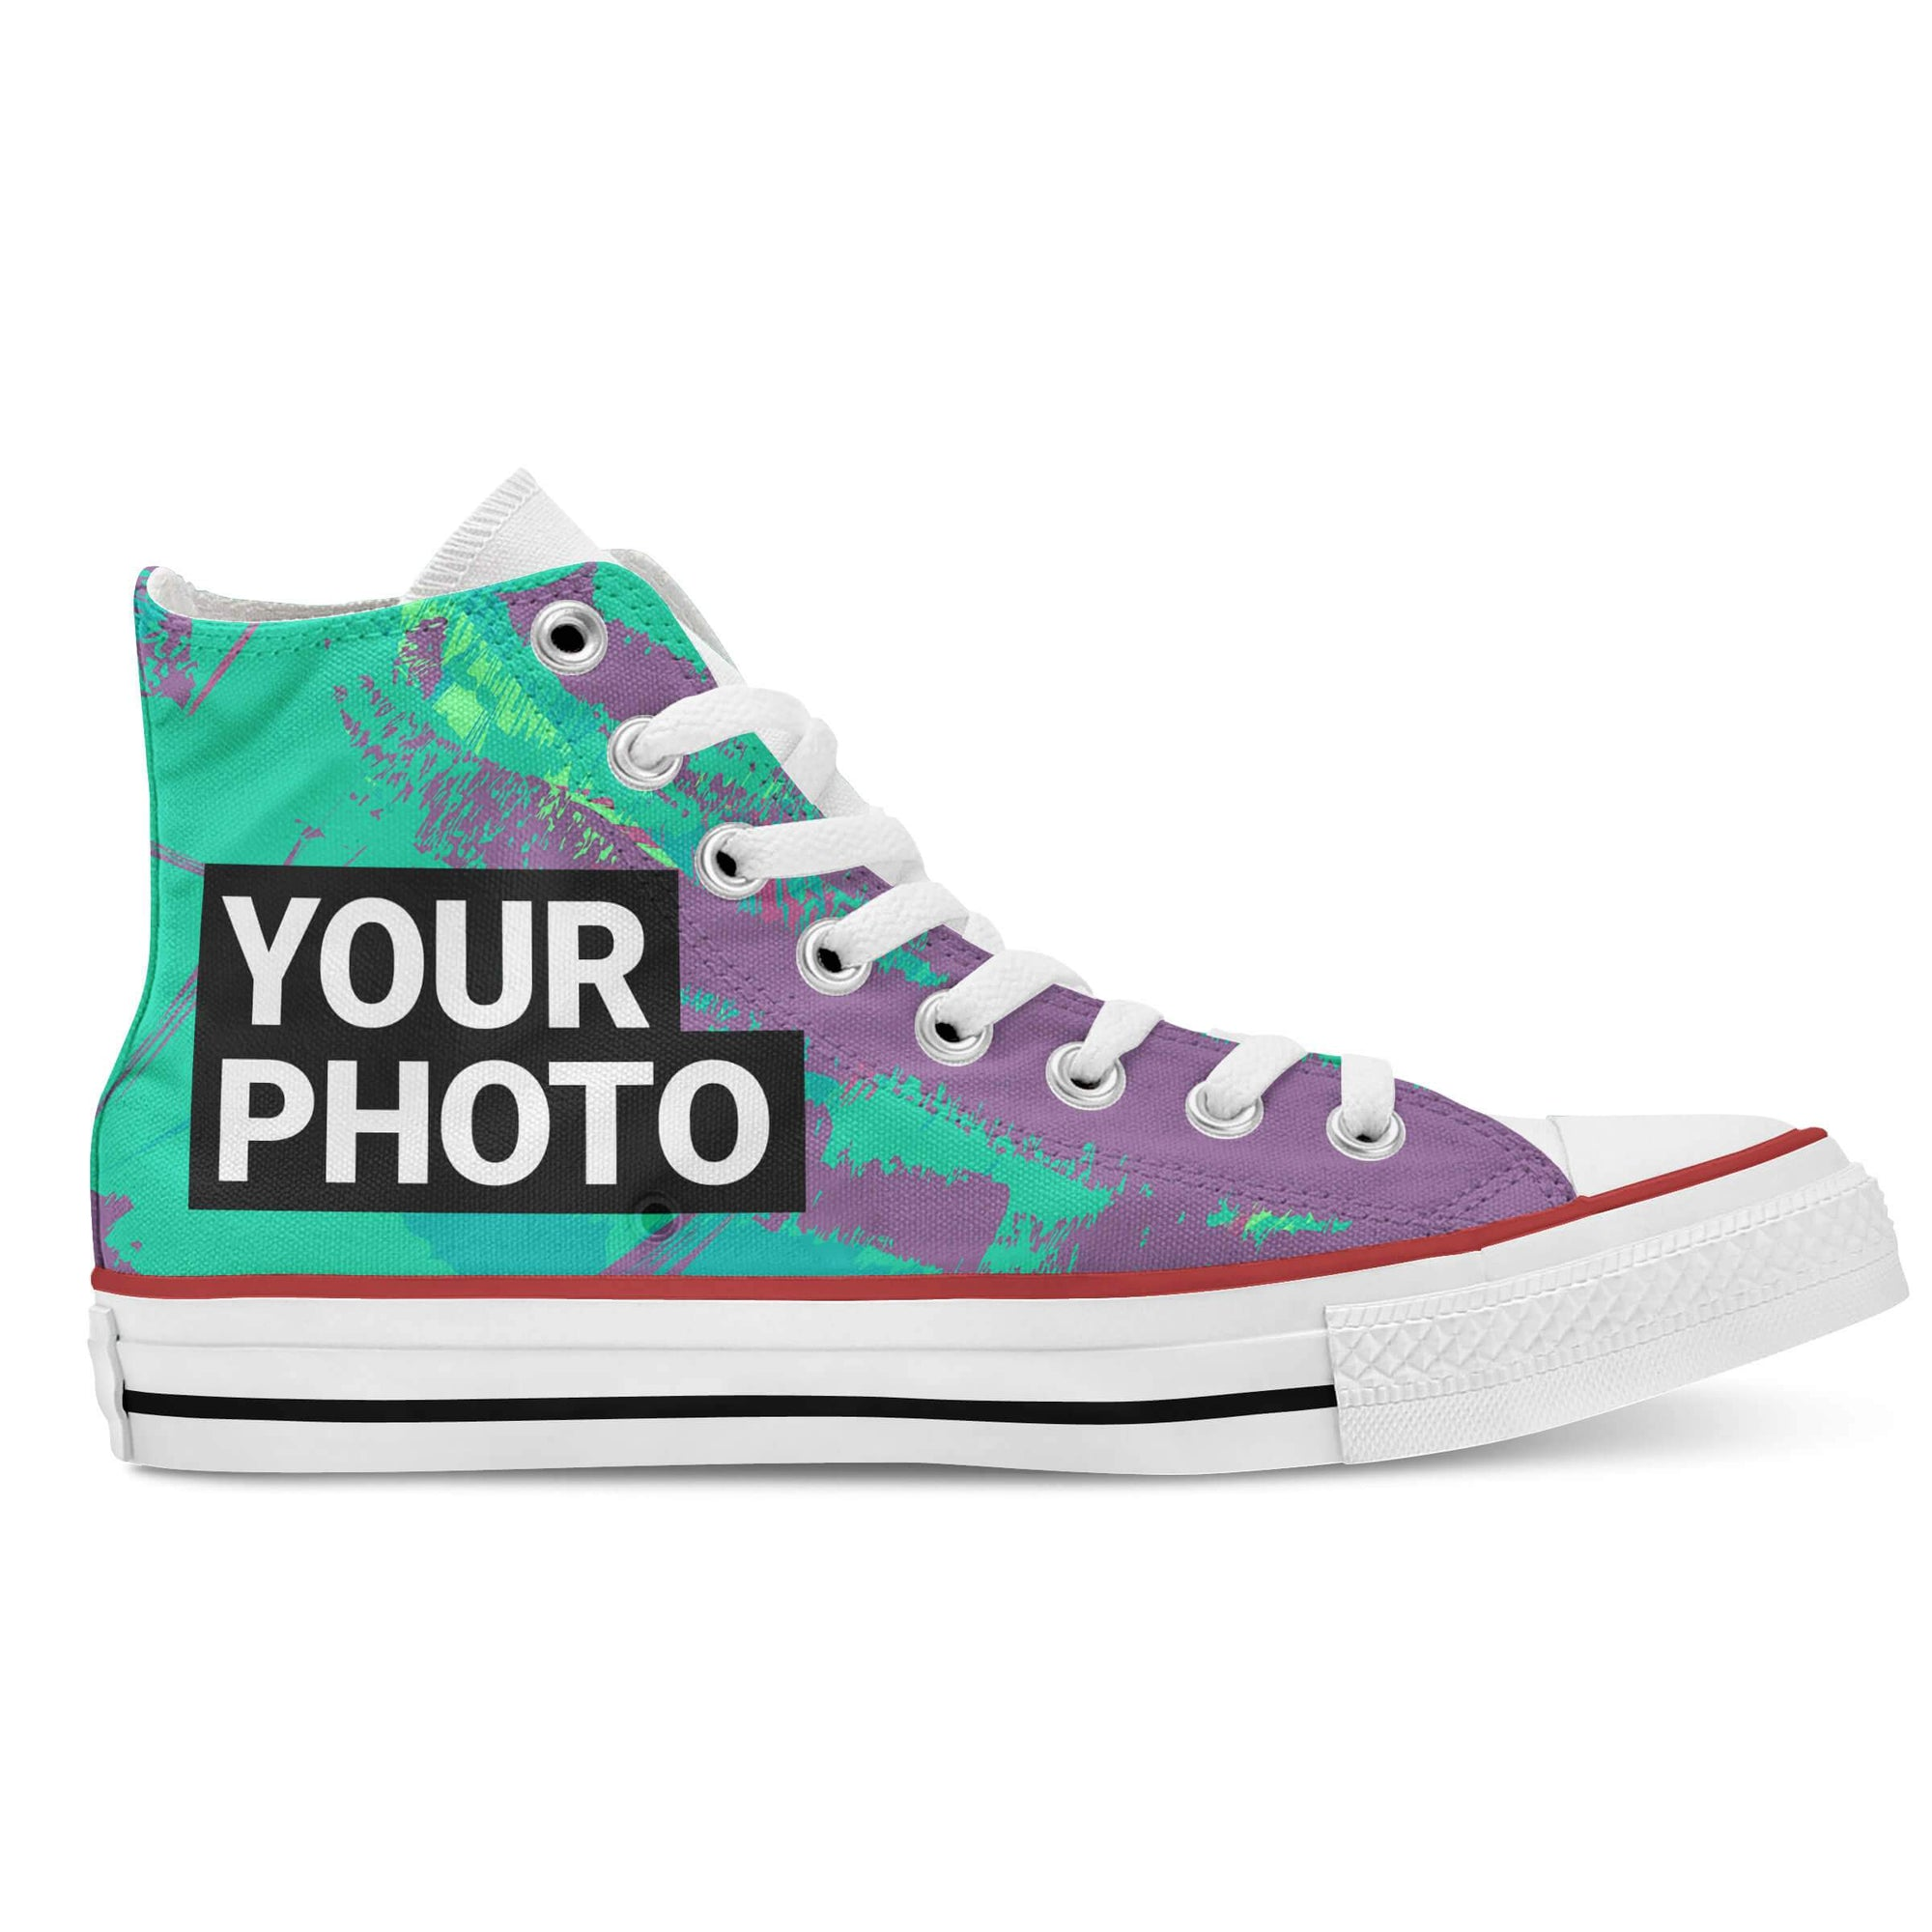 Personalized High Top Sneakers